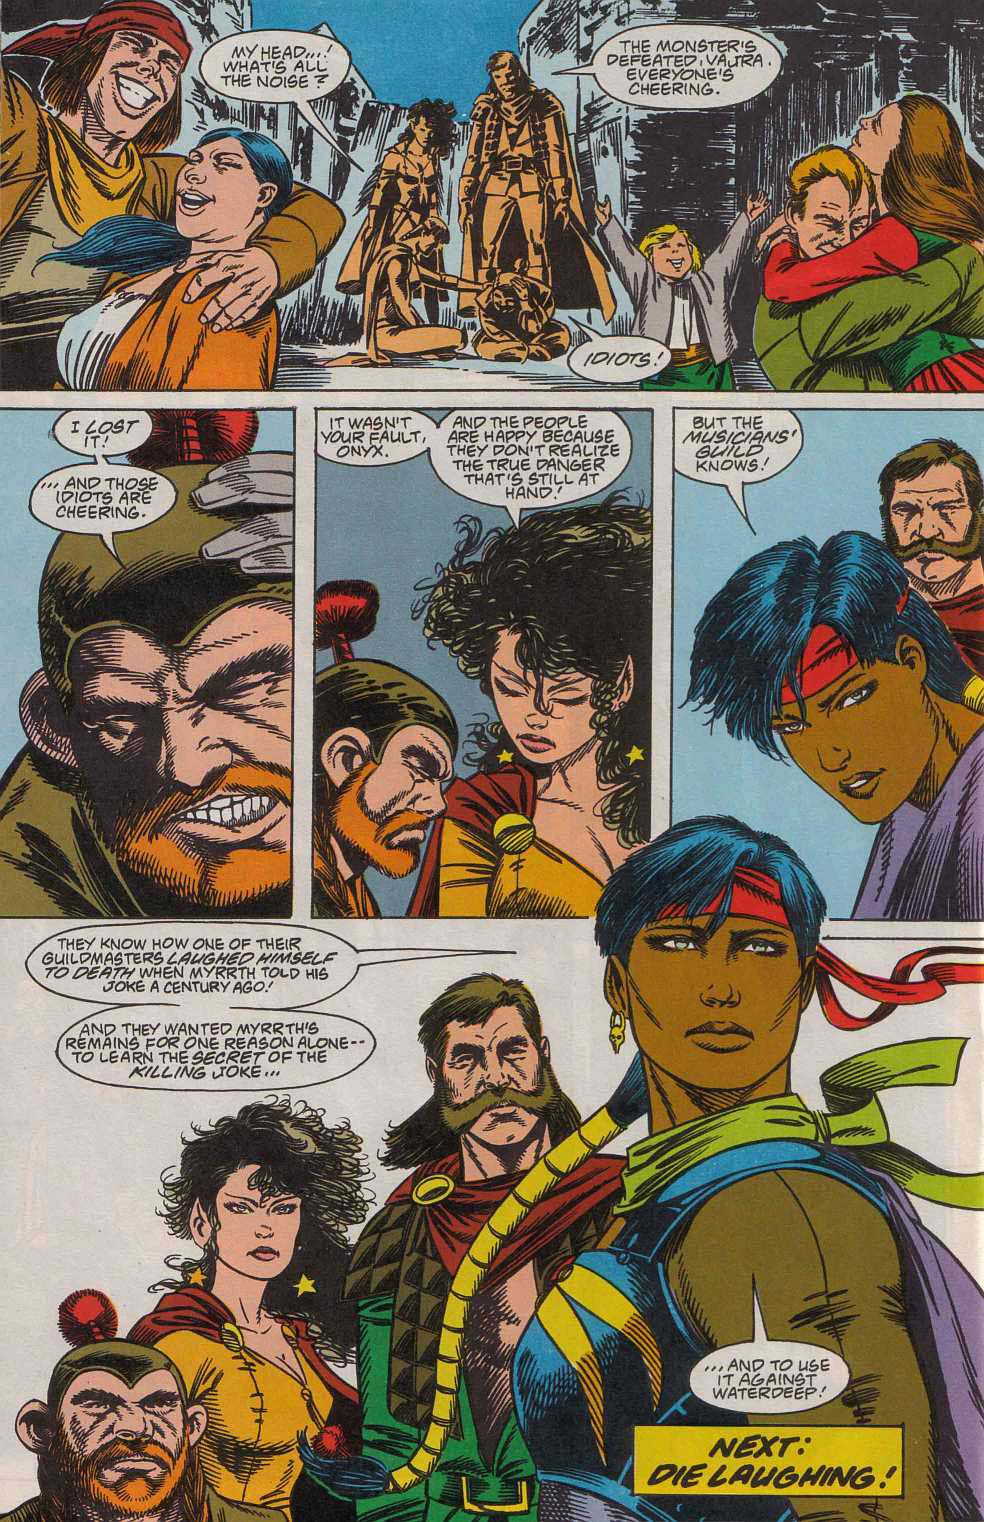 Read online Advanced Dungeons & Dragons comic -  Issue #7 - 25